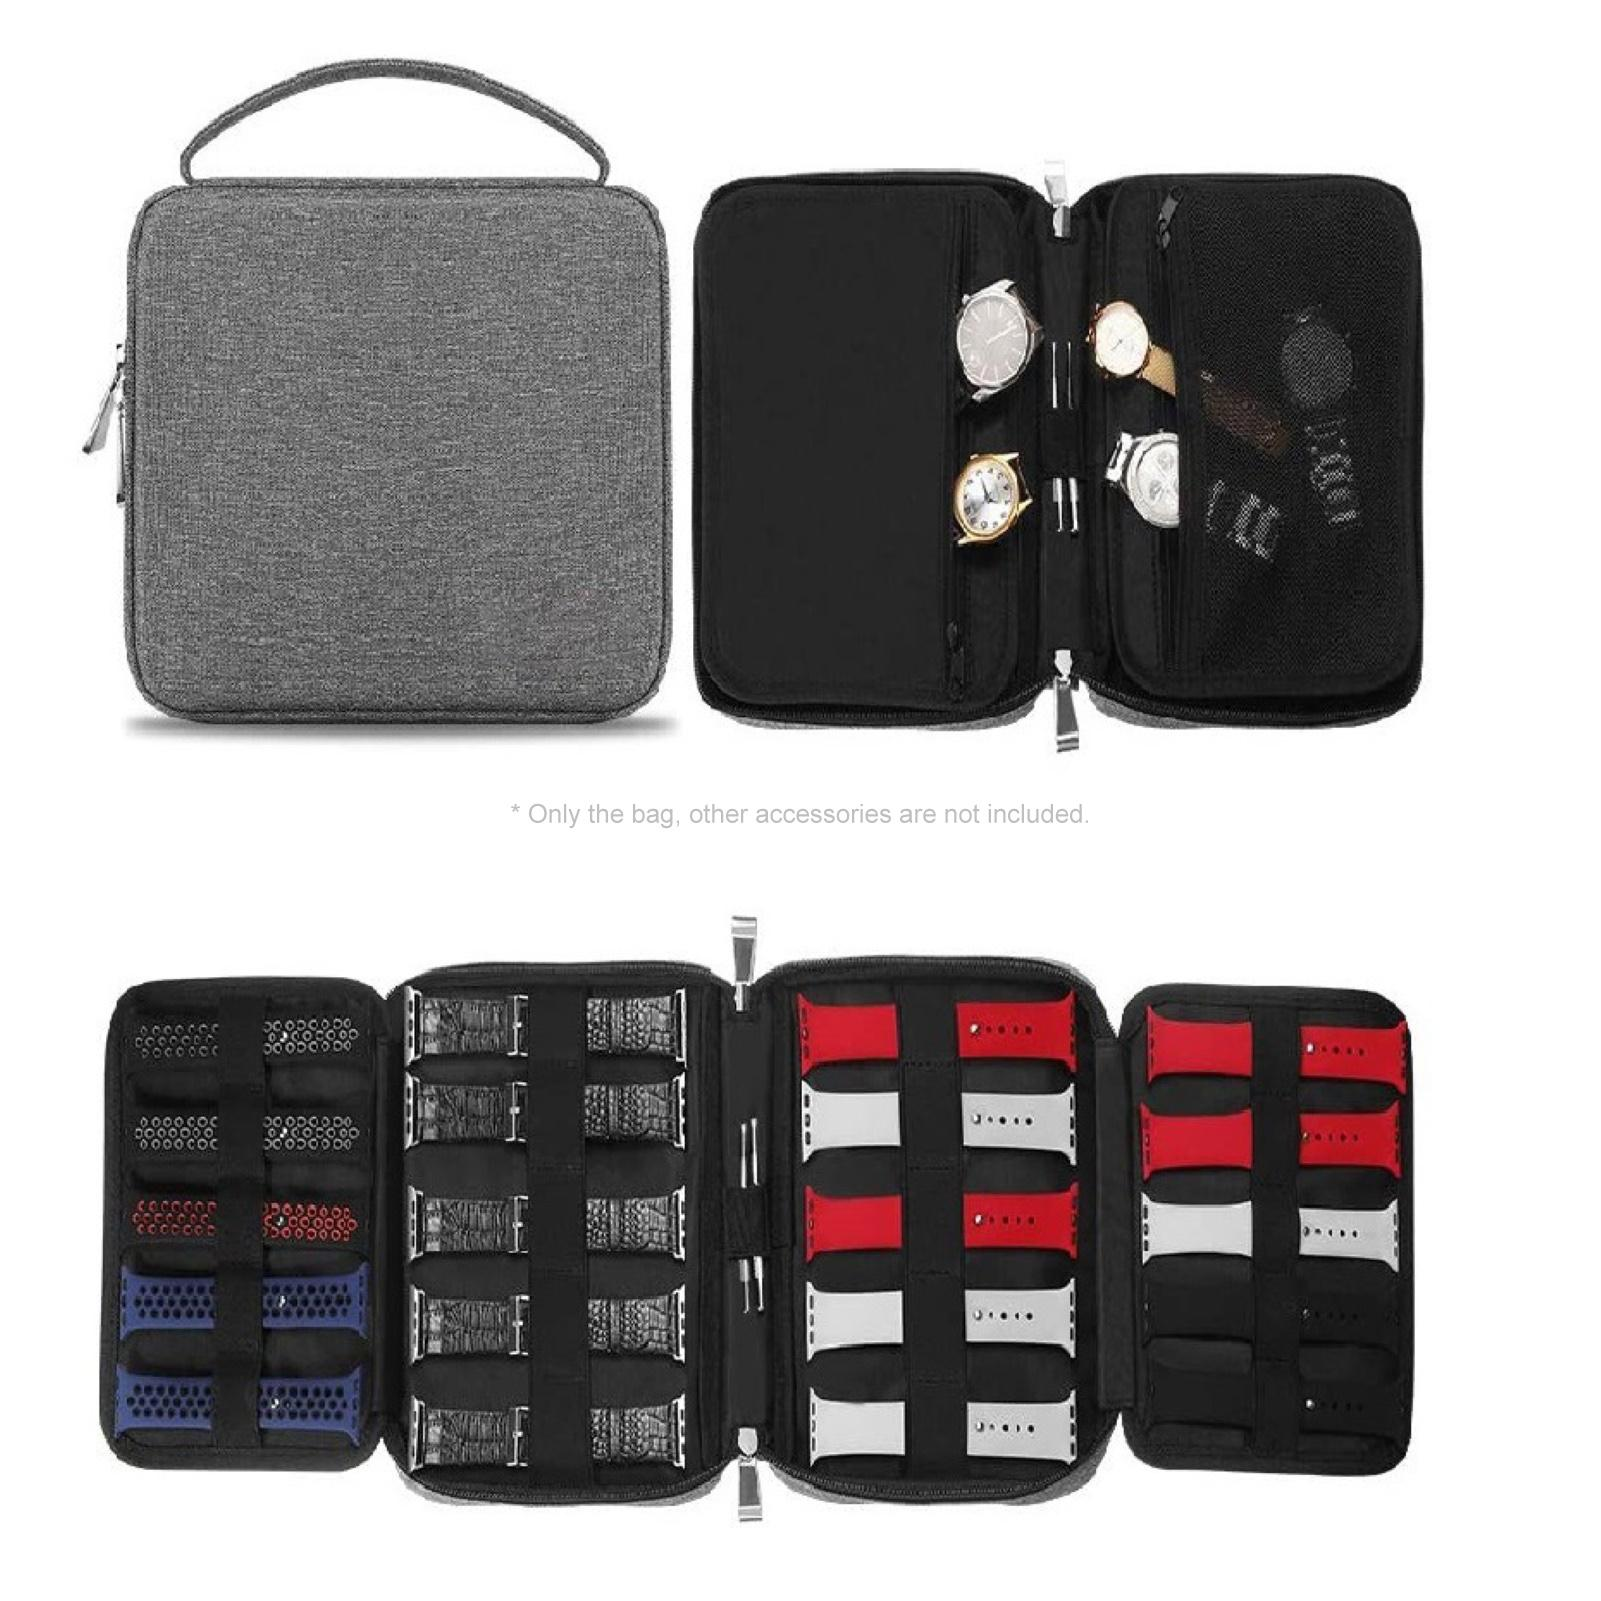 HOT SALES!!! New Arrival Portable Watch Band Strap Organizer Storage Bag USB Cable Carrier Travel Ha